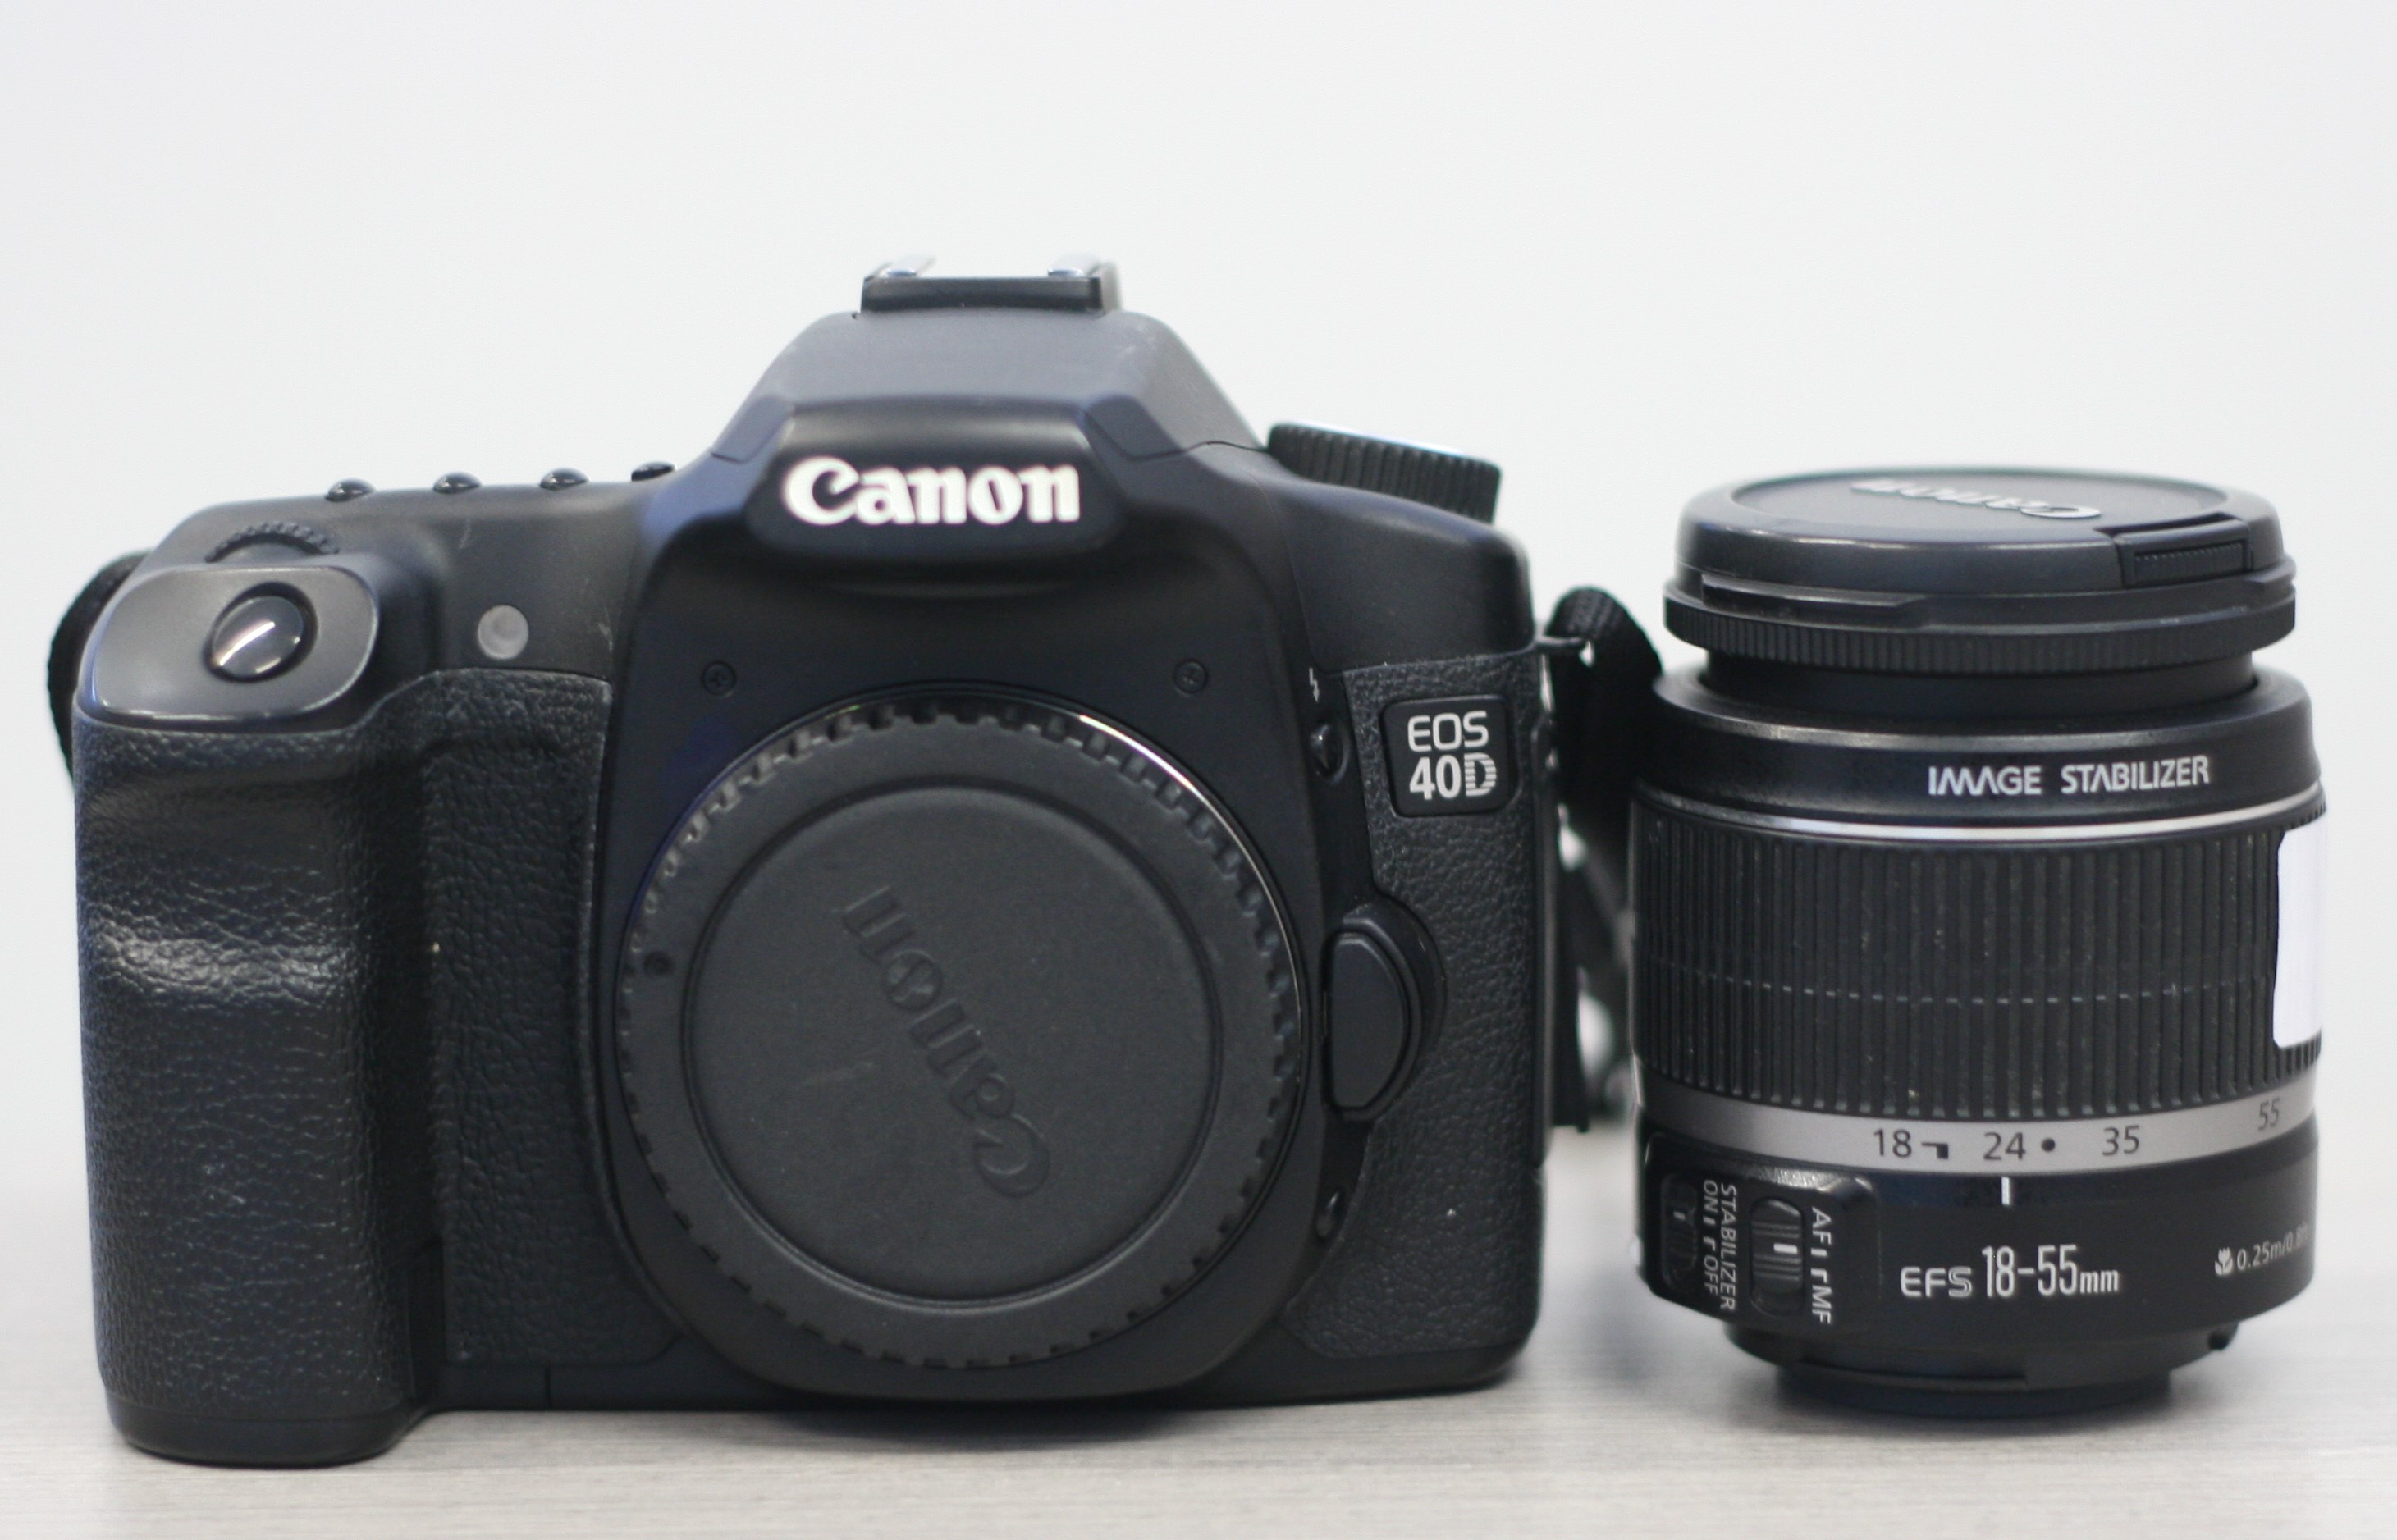 EOS 40d with 18-55mm Lens